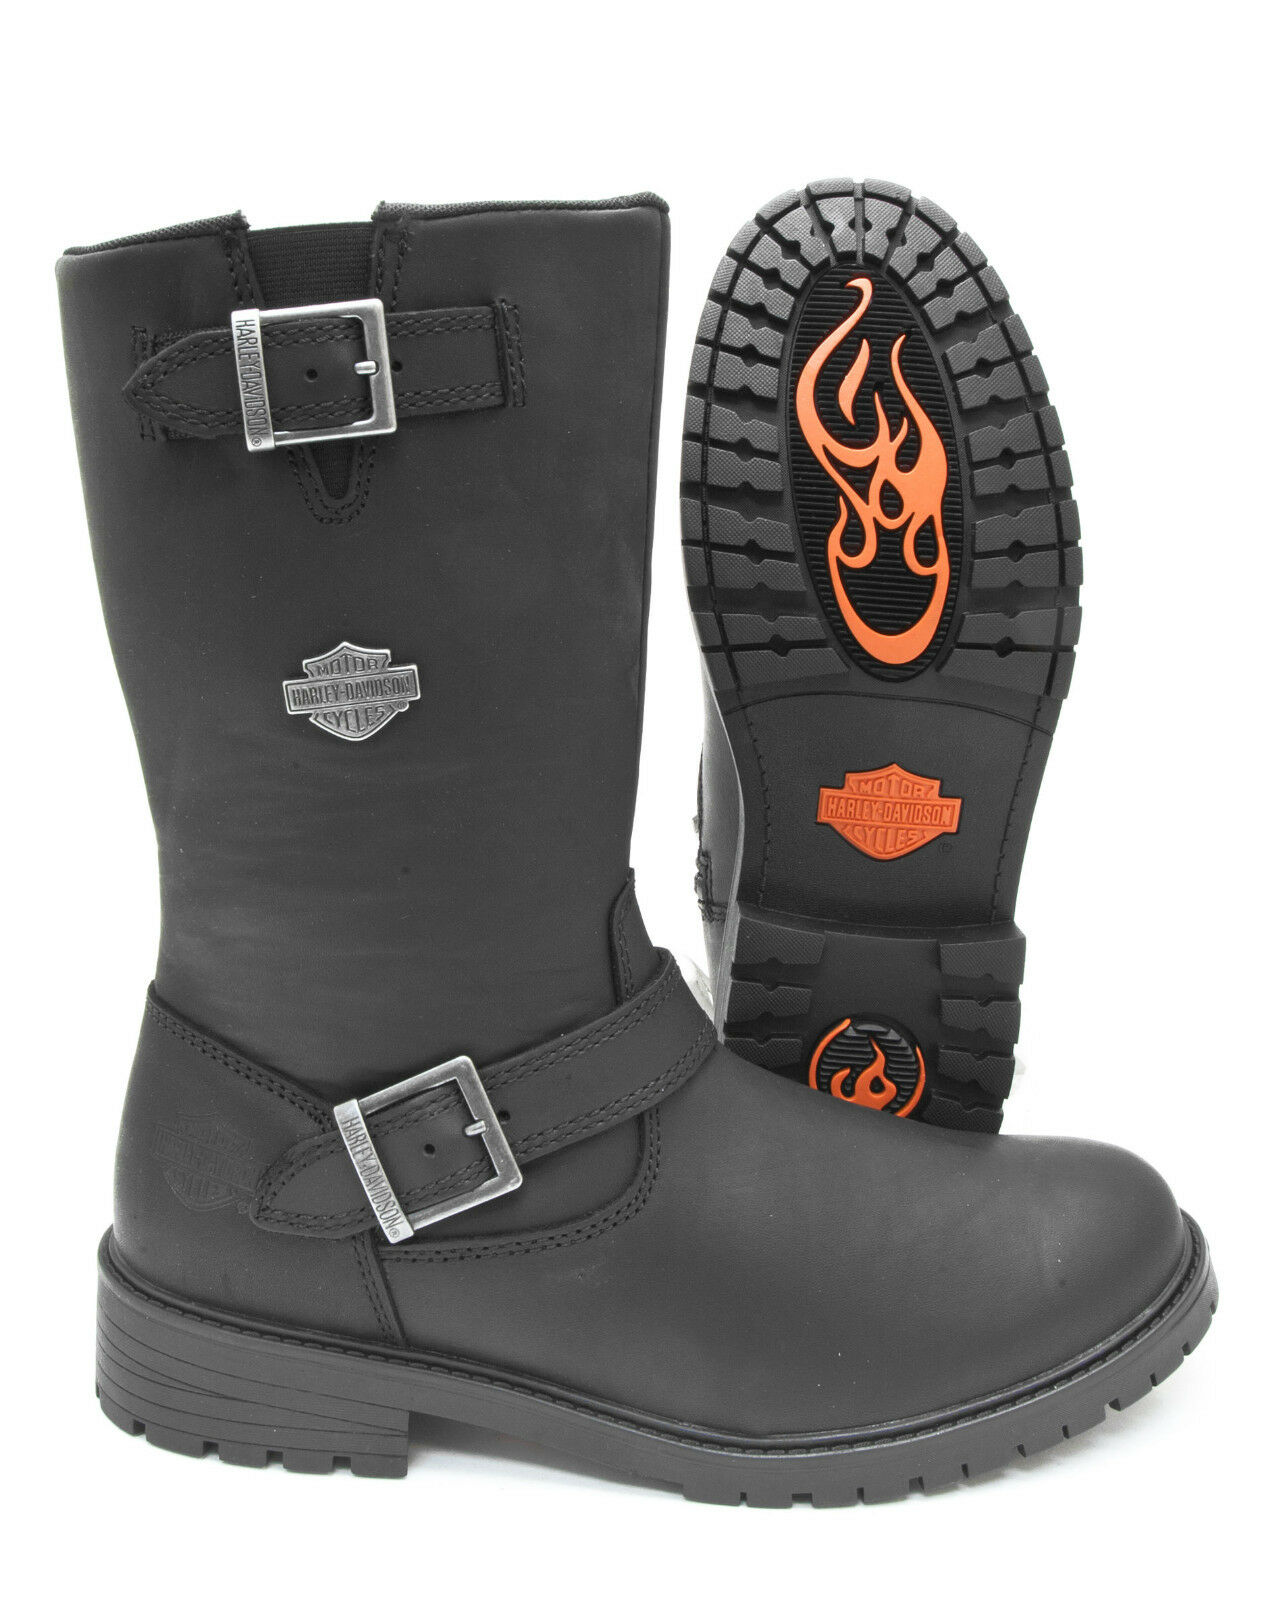 Harley Davidson Boots Black Leather Randy Buckle Zippered